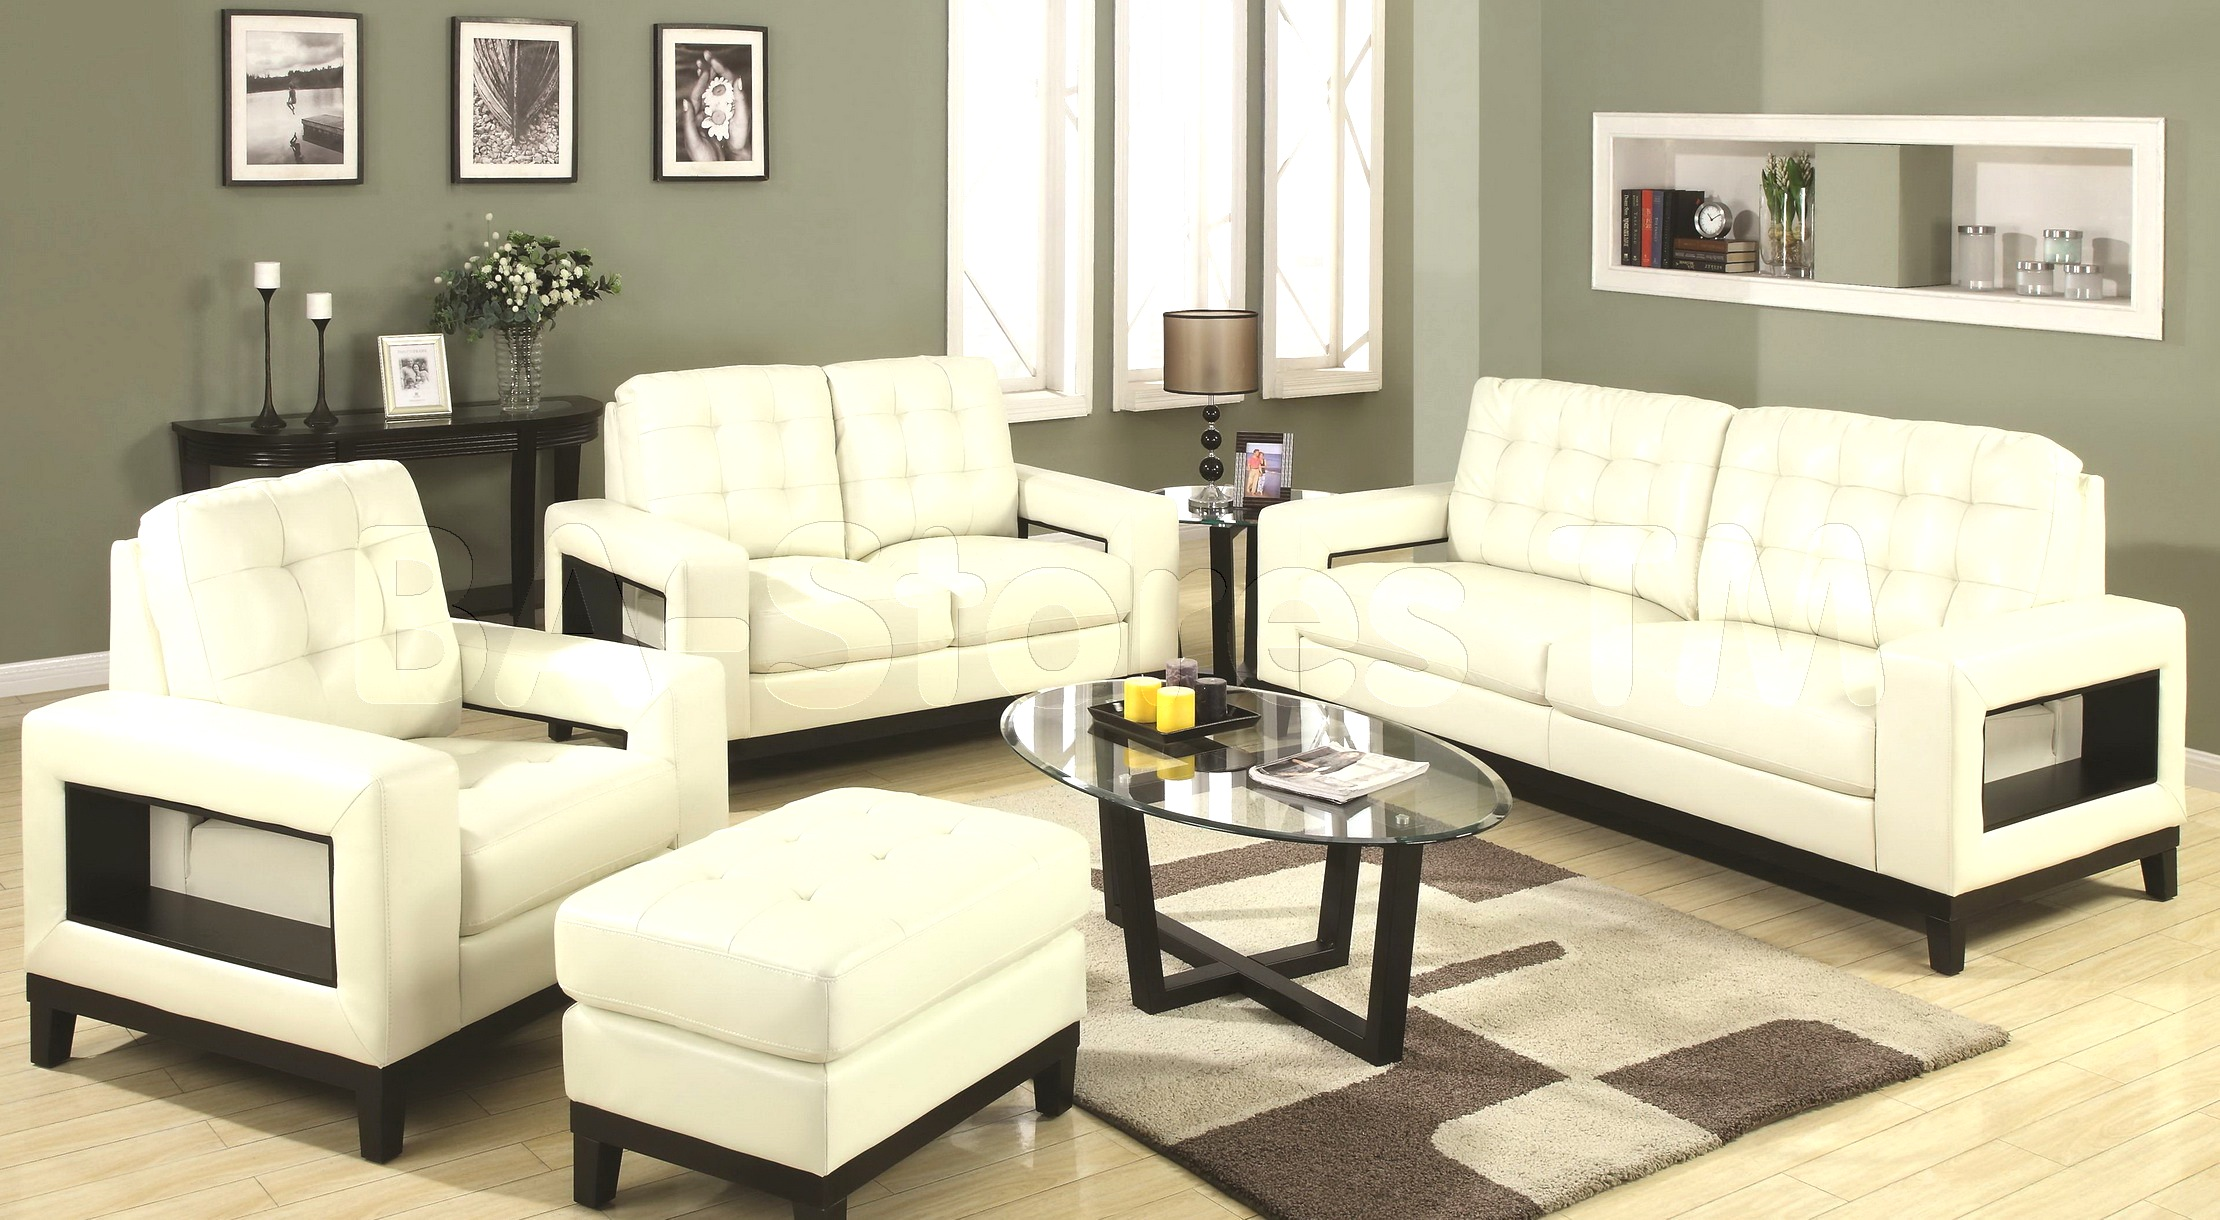 VIEW IN GALLERY Modern Sofa Sets Living Room Breathtaking White Furniture